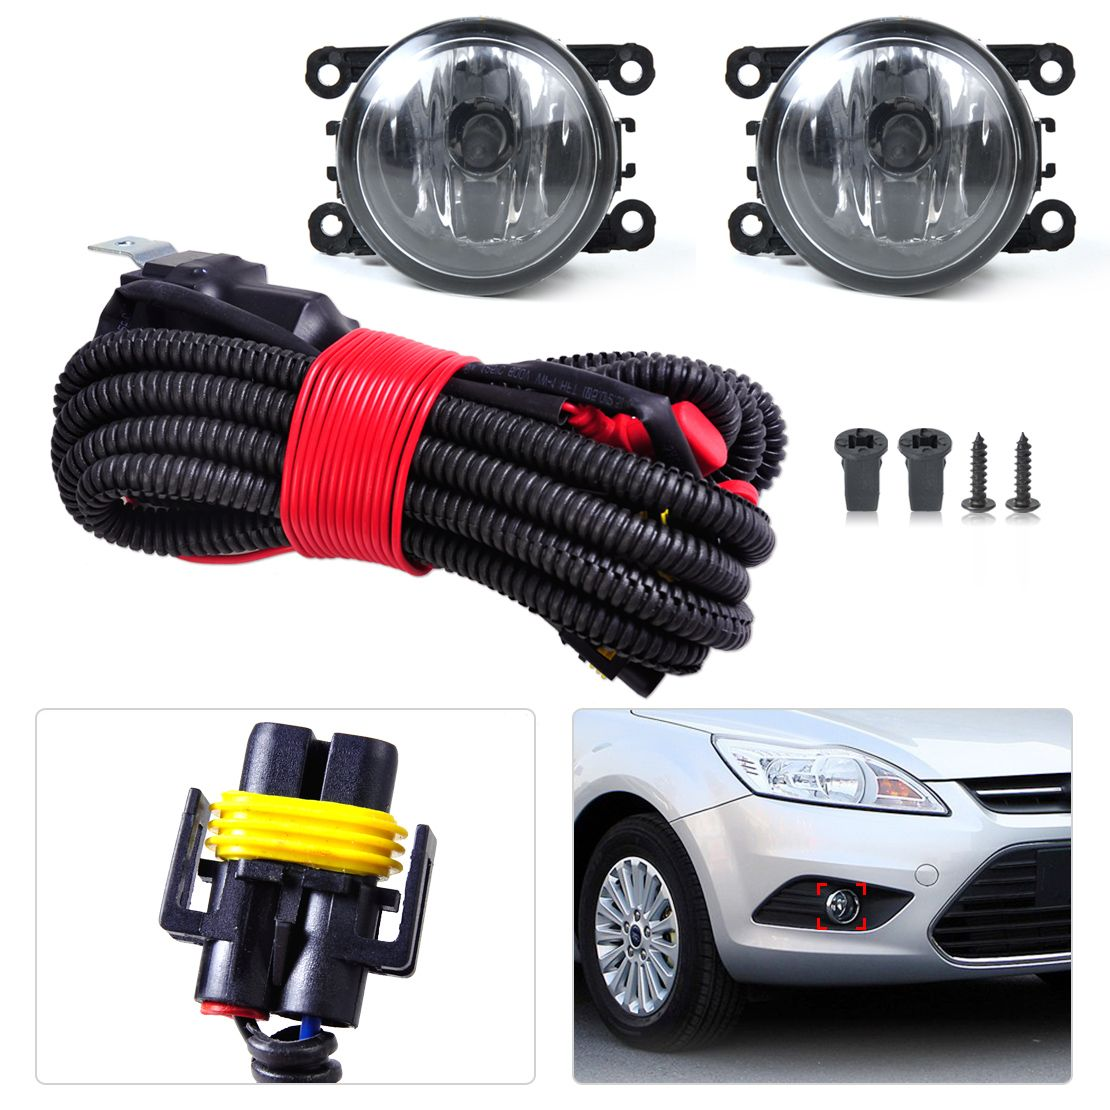 hight resolution of new h11 wiring harness sockets wire connector 2 fog lights lamp 4f9z 15200 aa for ford focus honda cr v pilot acura tsx nissan